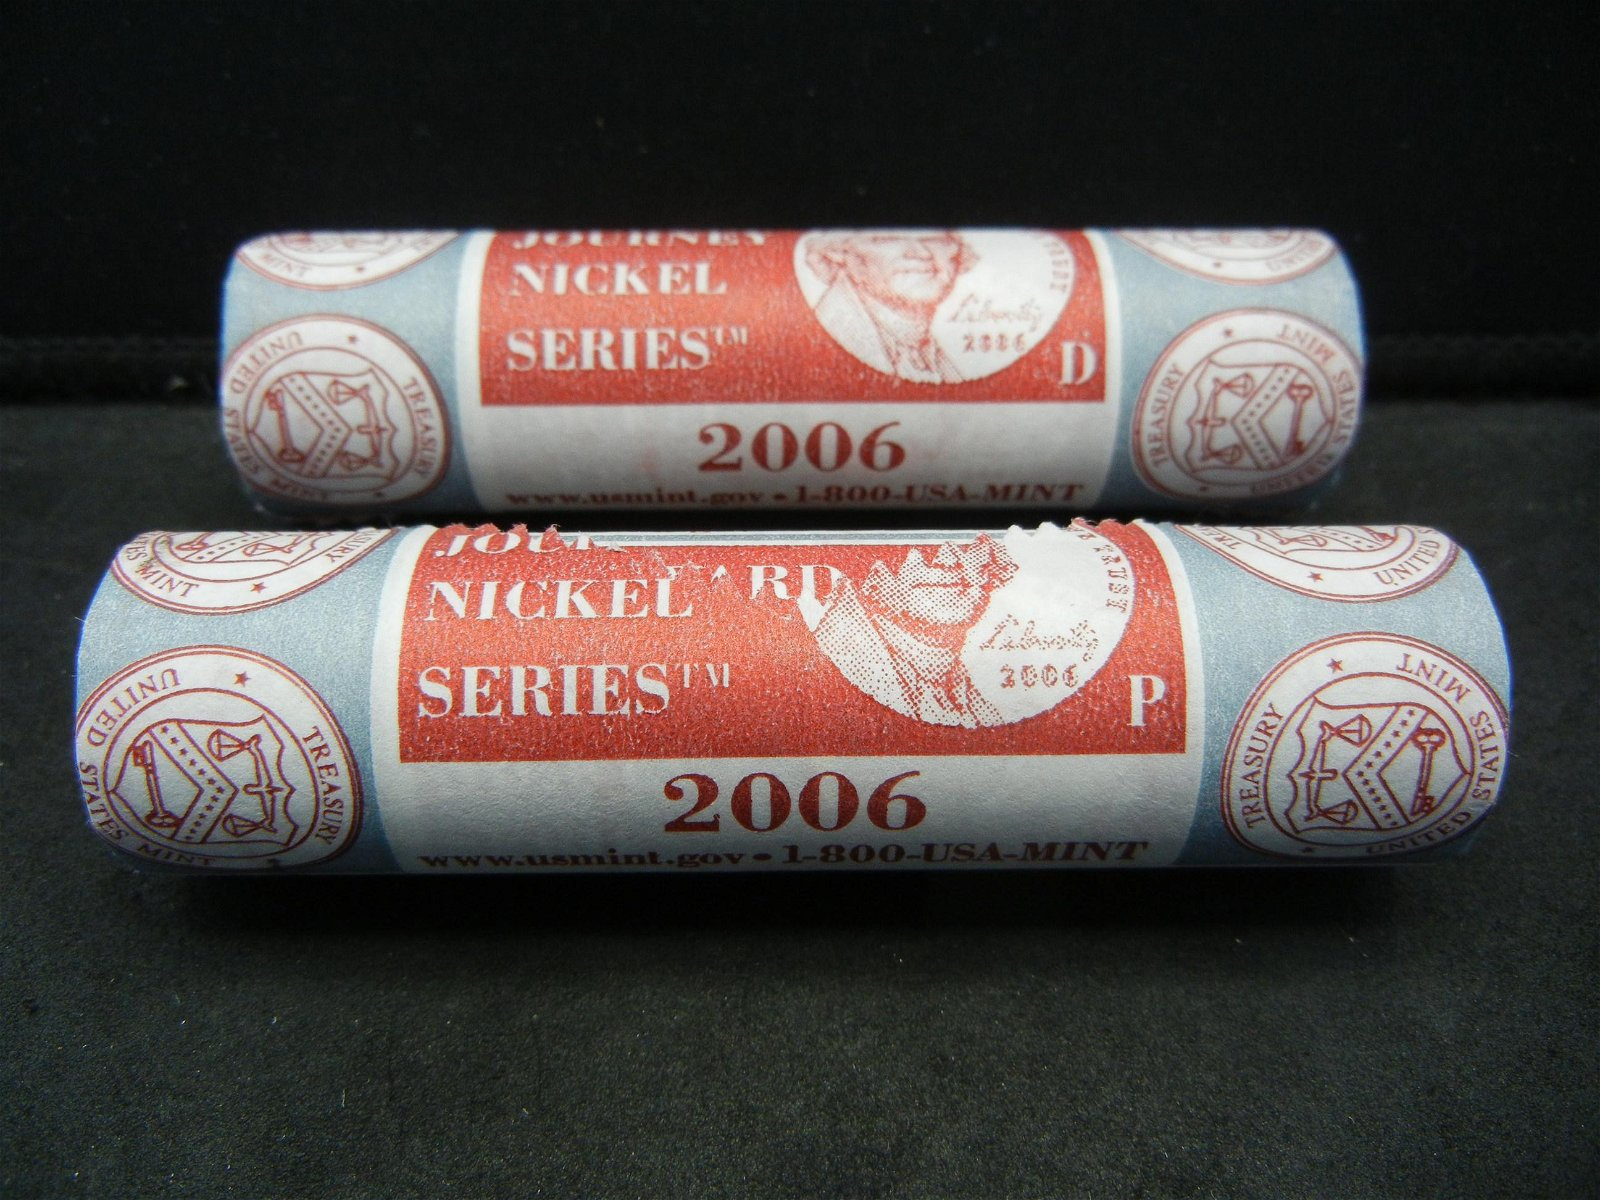 2006 P and D Mint Wrapped Rolls of Westward Journey